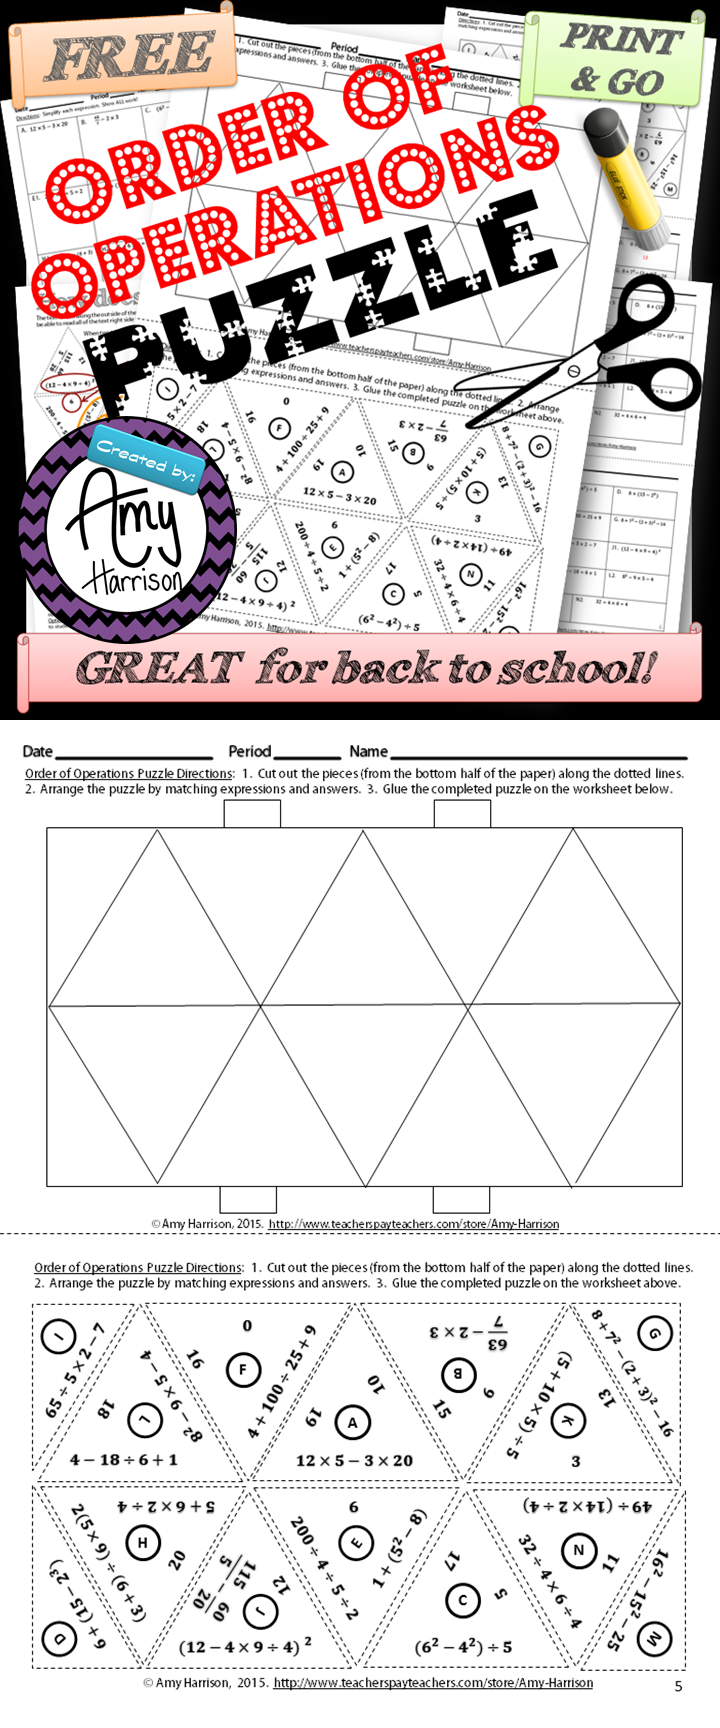 Try this FREE order of operations puzzle that is great for back to ...